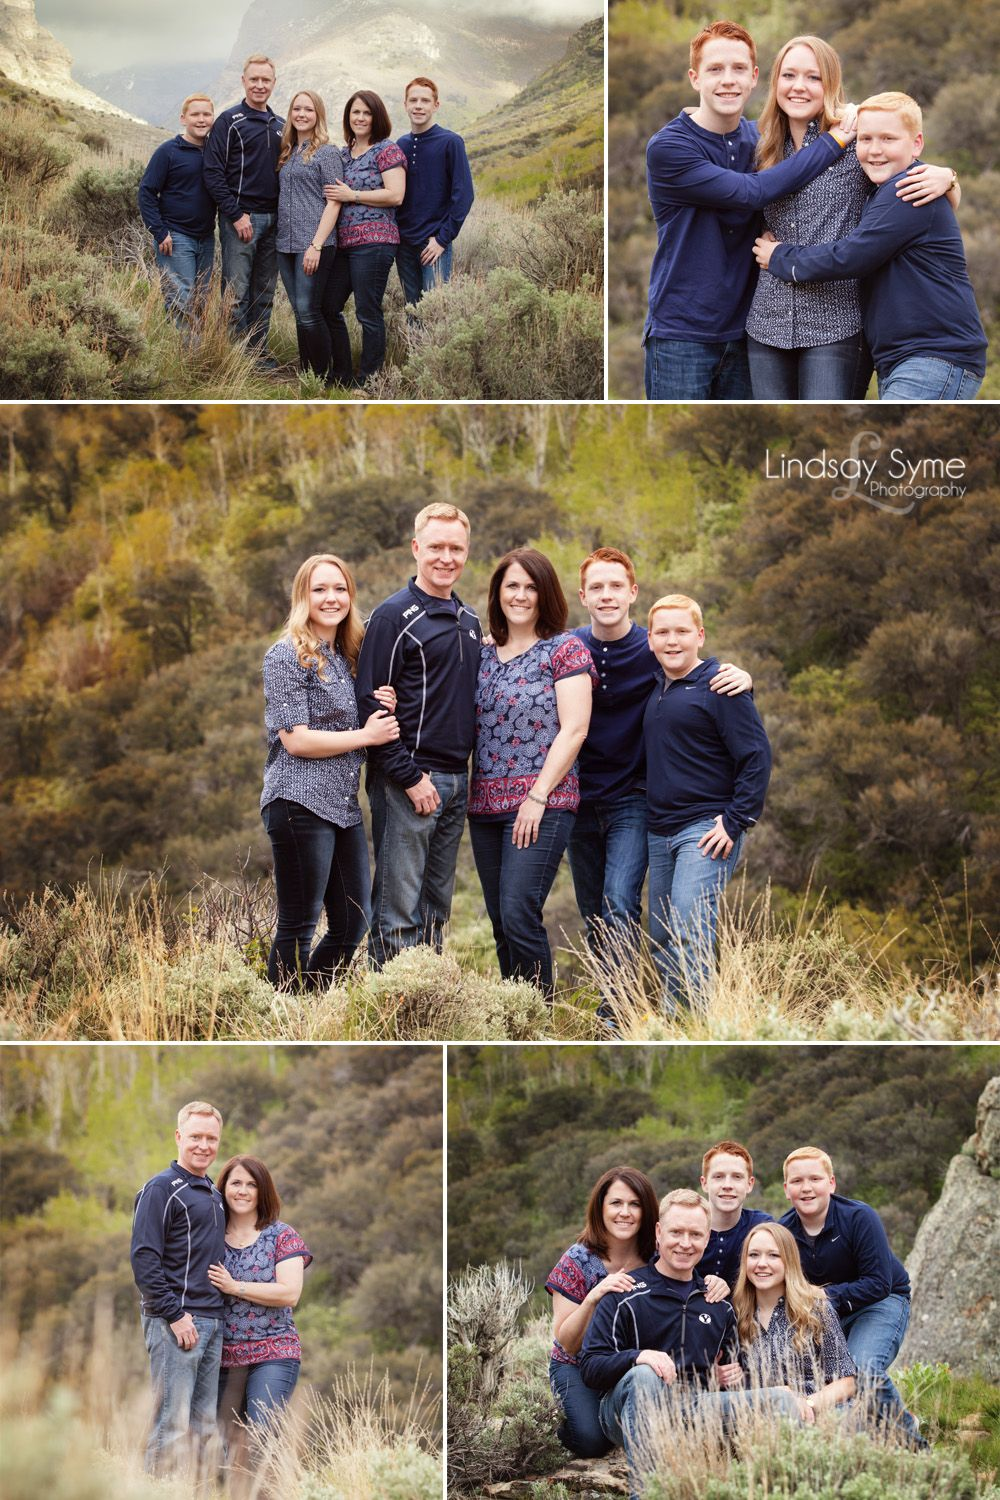 Outdoor Family Photos - Elko Family Photography #winterfamilyphotography